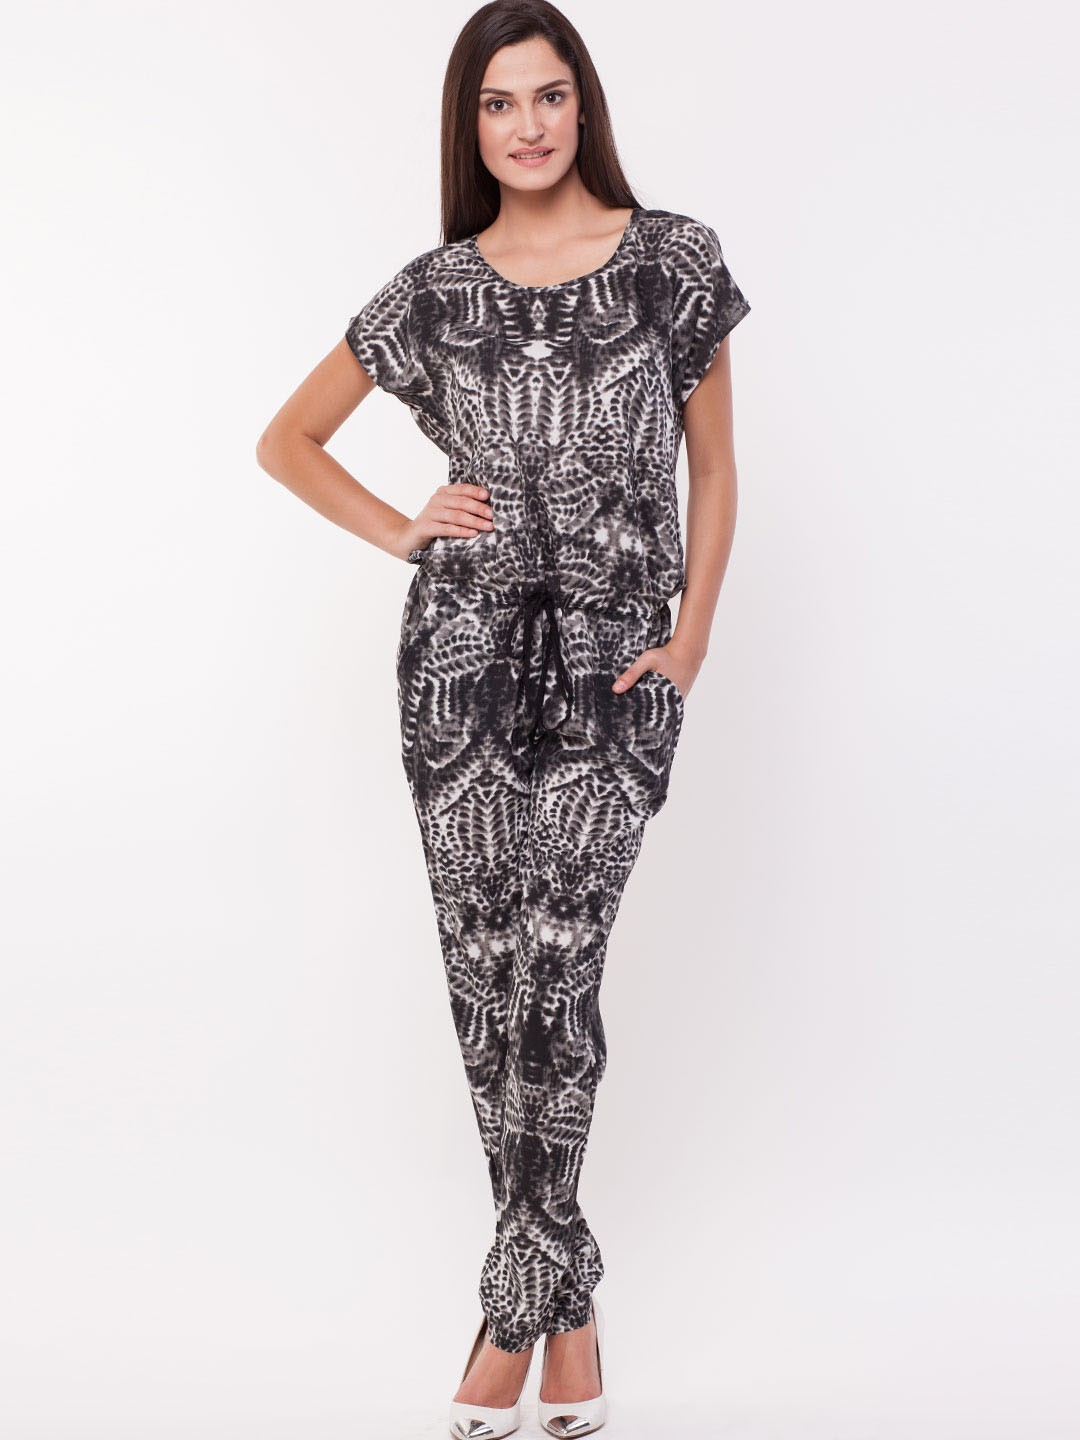 DESIGNER JUMPSUITS, LACE JUMPSUITS, AND WIDE LEG JUMPSUITS. Look fabulous while wearing on-trend one-piece women's jumpsuits. Get dressed and ready to hit the town in five minutes or less with effortless jumpsuit outfits.